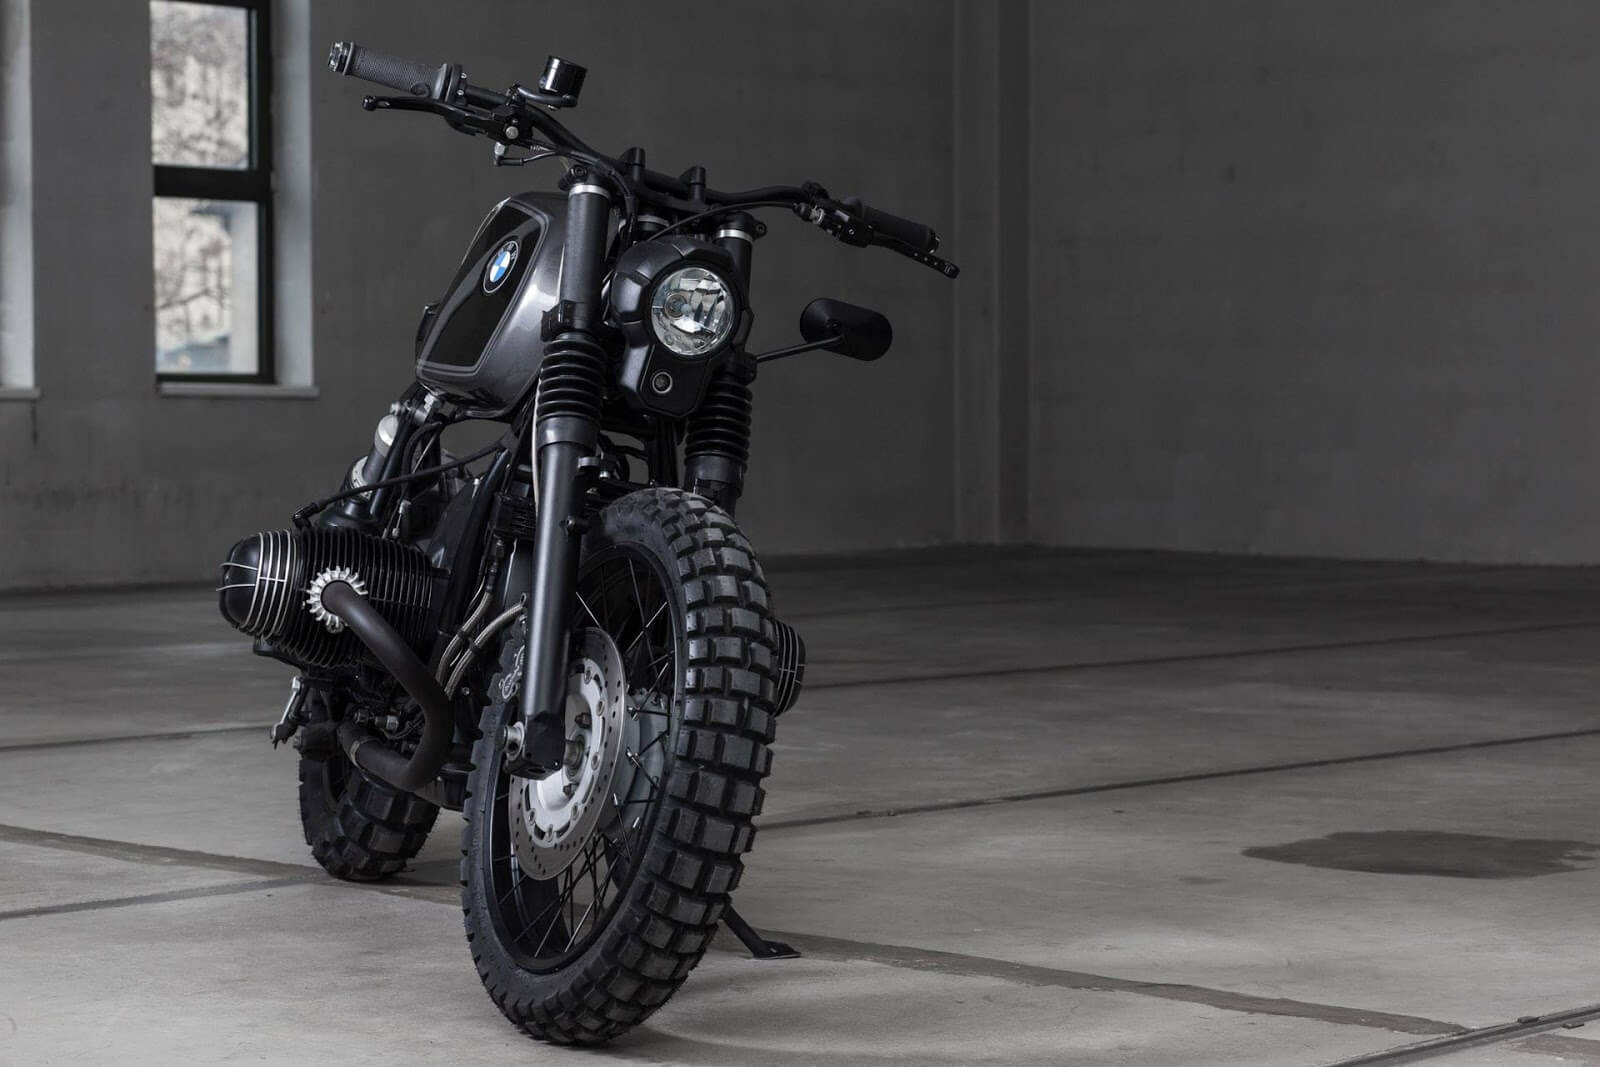 bmw r100r scrambler caf racer by vagabund. Black Bedroom Furniture Sets. Home Design Ideas